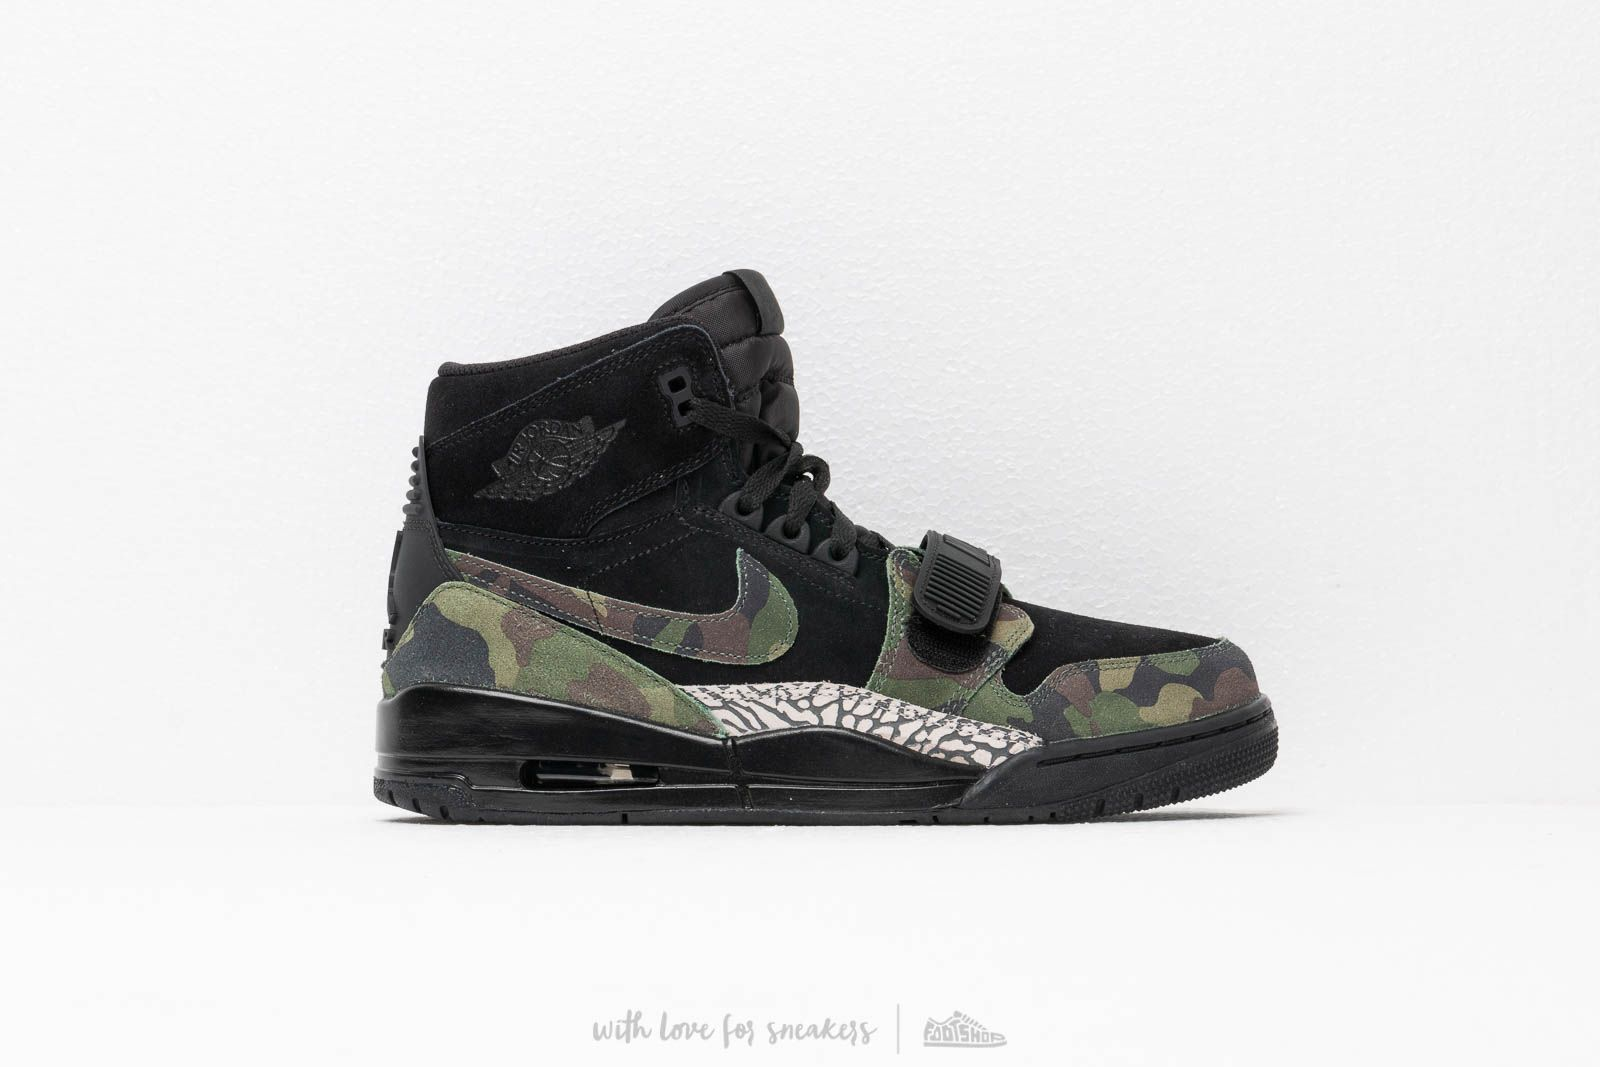 timeless design b40b9 cc8aa Air Jordan Legacy 312 Black Camo Green-Black at a great price 139 €